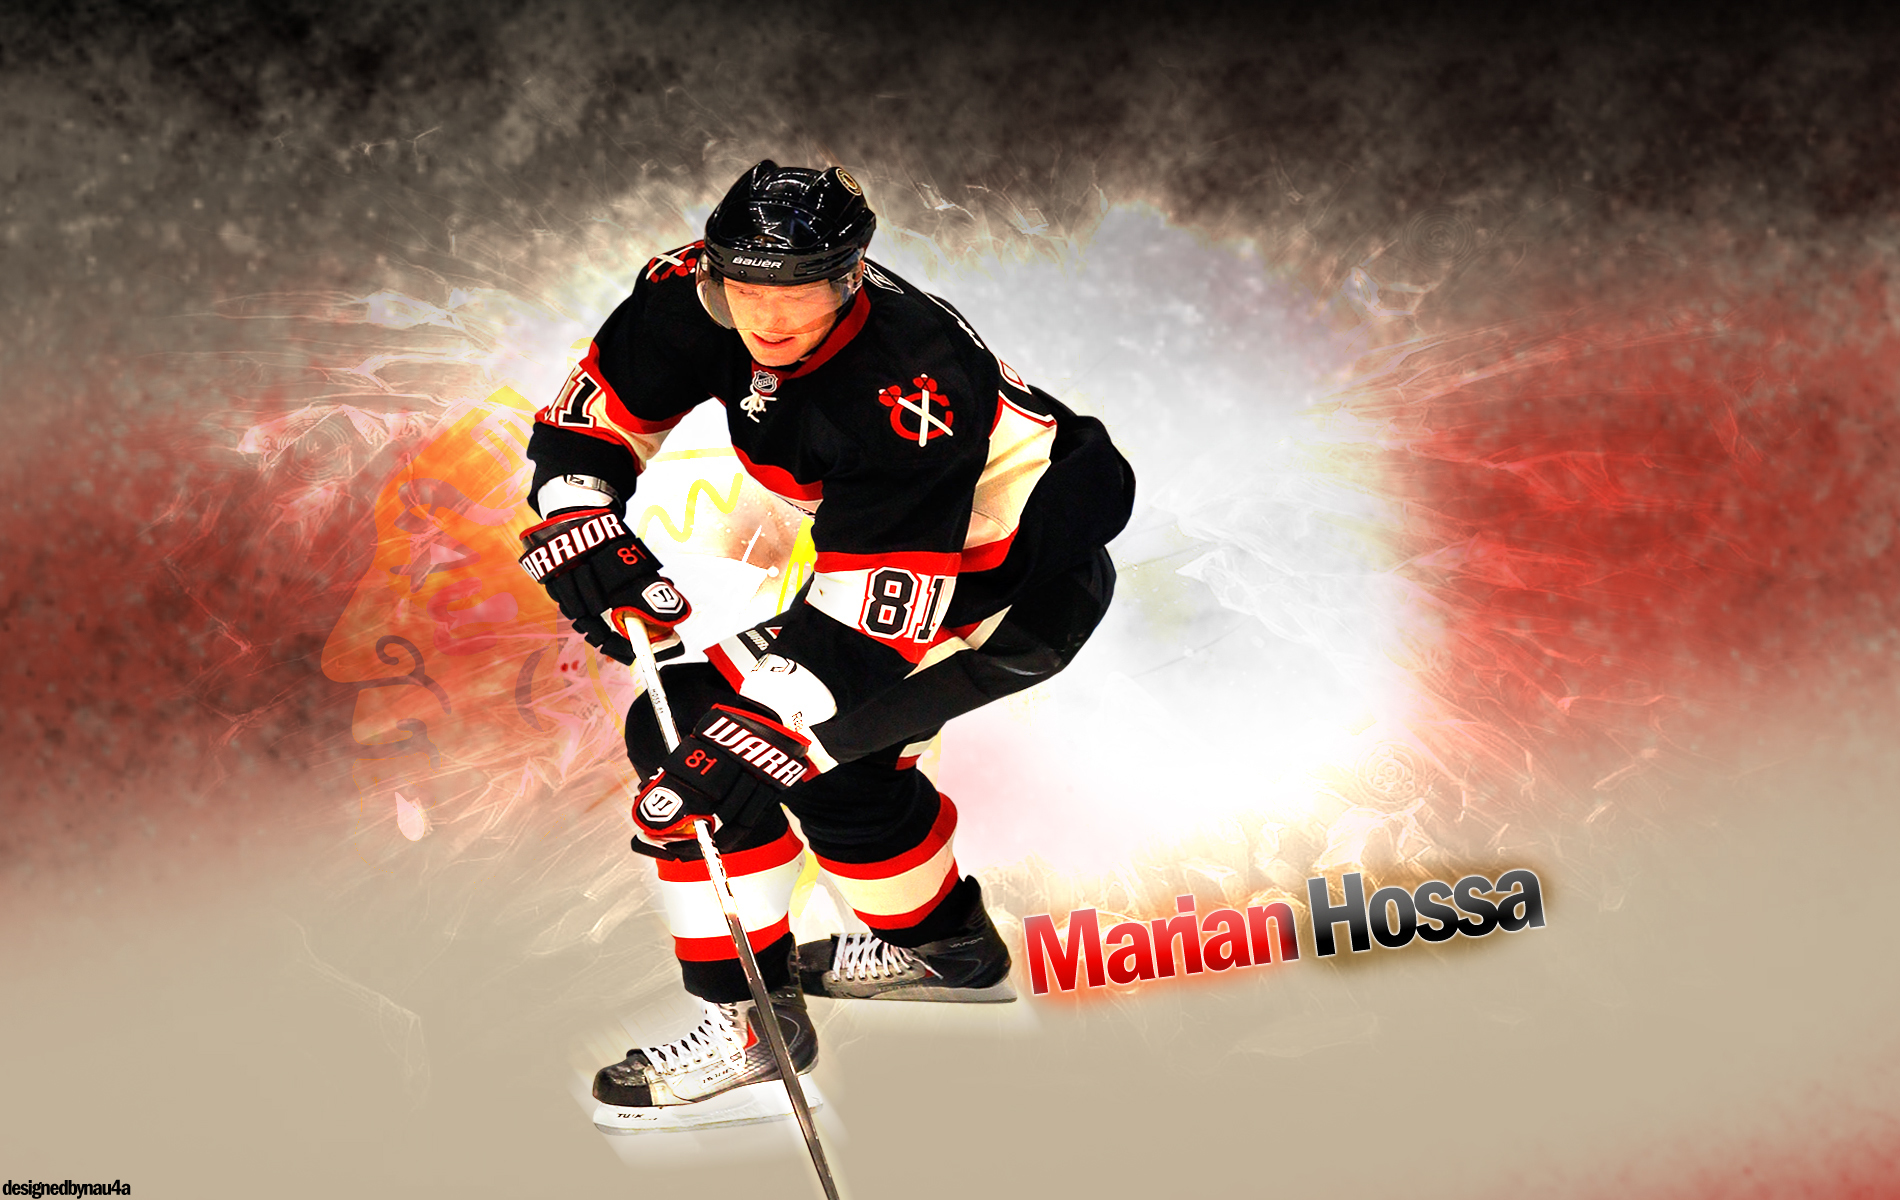 Marian Hossa wallpapers and image